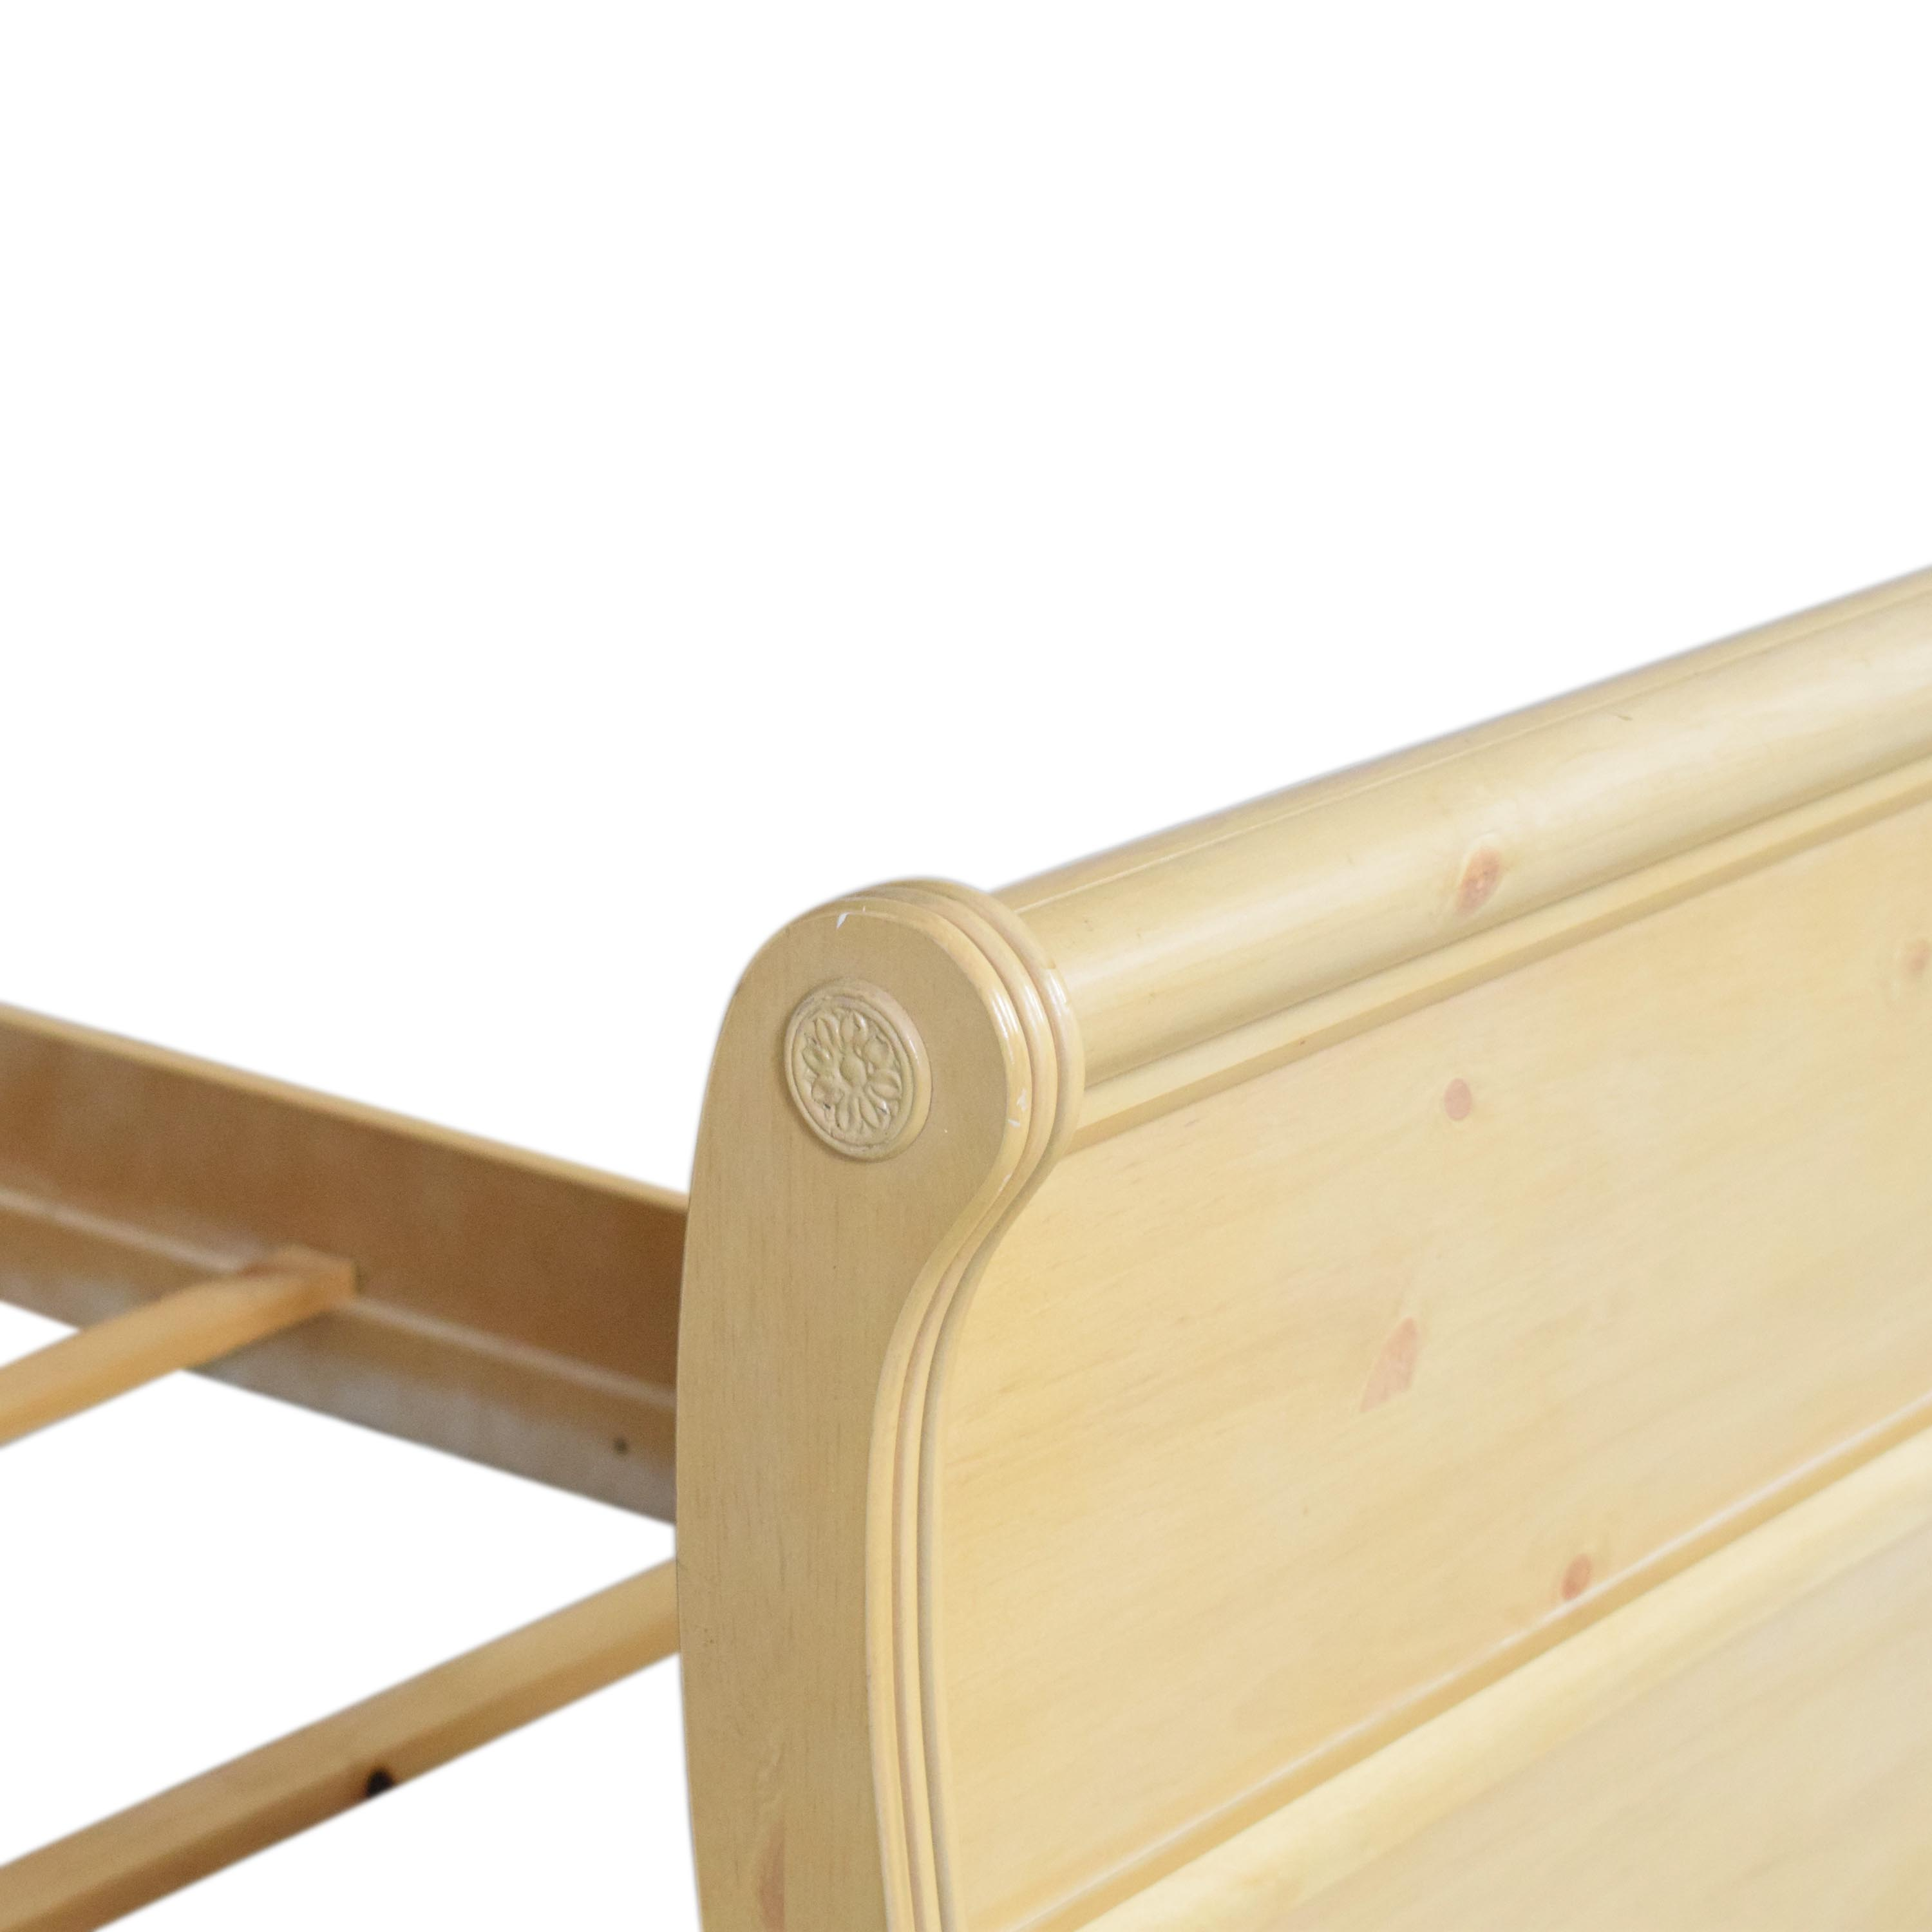 A-America Wood Furniture A-America Wood Furniture Twin Sleigh Bed on sale